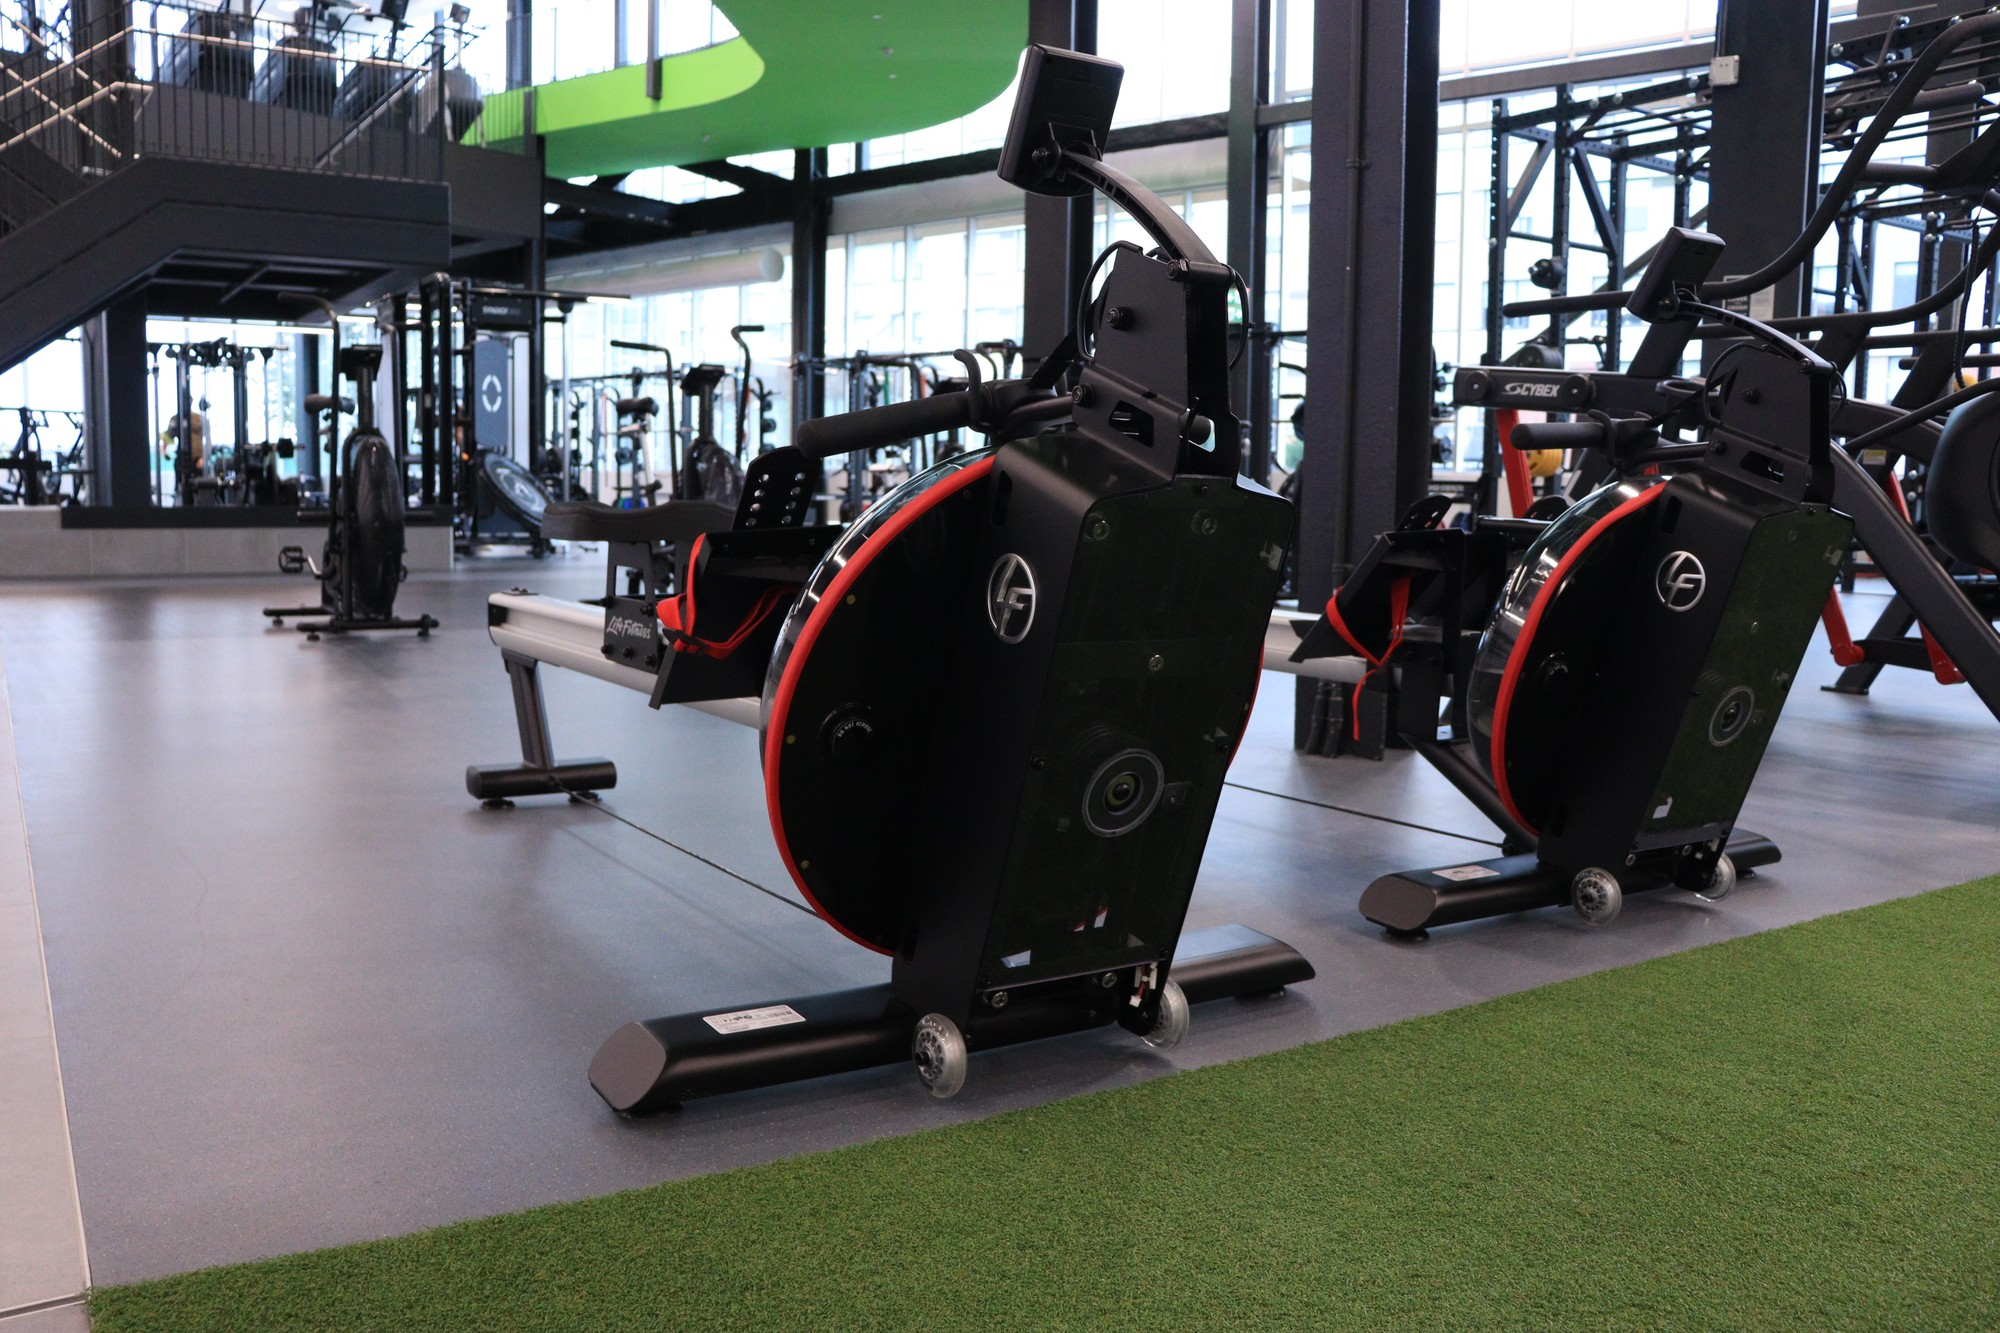 Rows upon rows of equipment such as elliptical machines that are provided by Hammer Strength and Life Fitness.